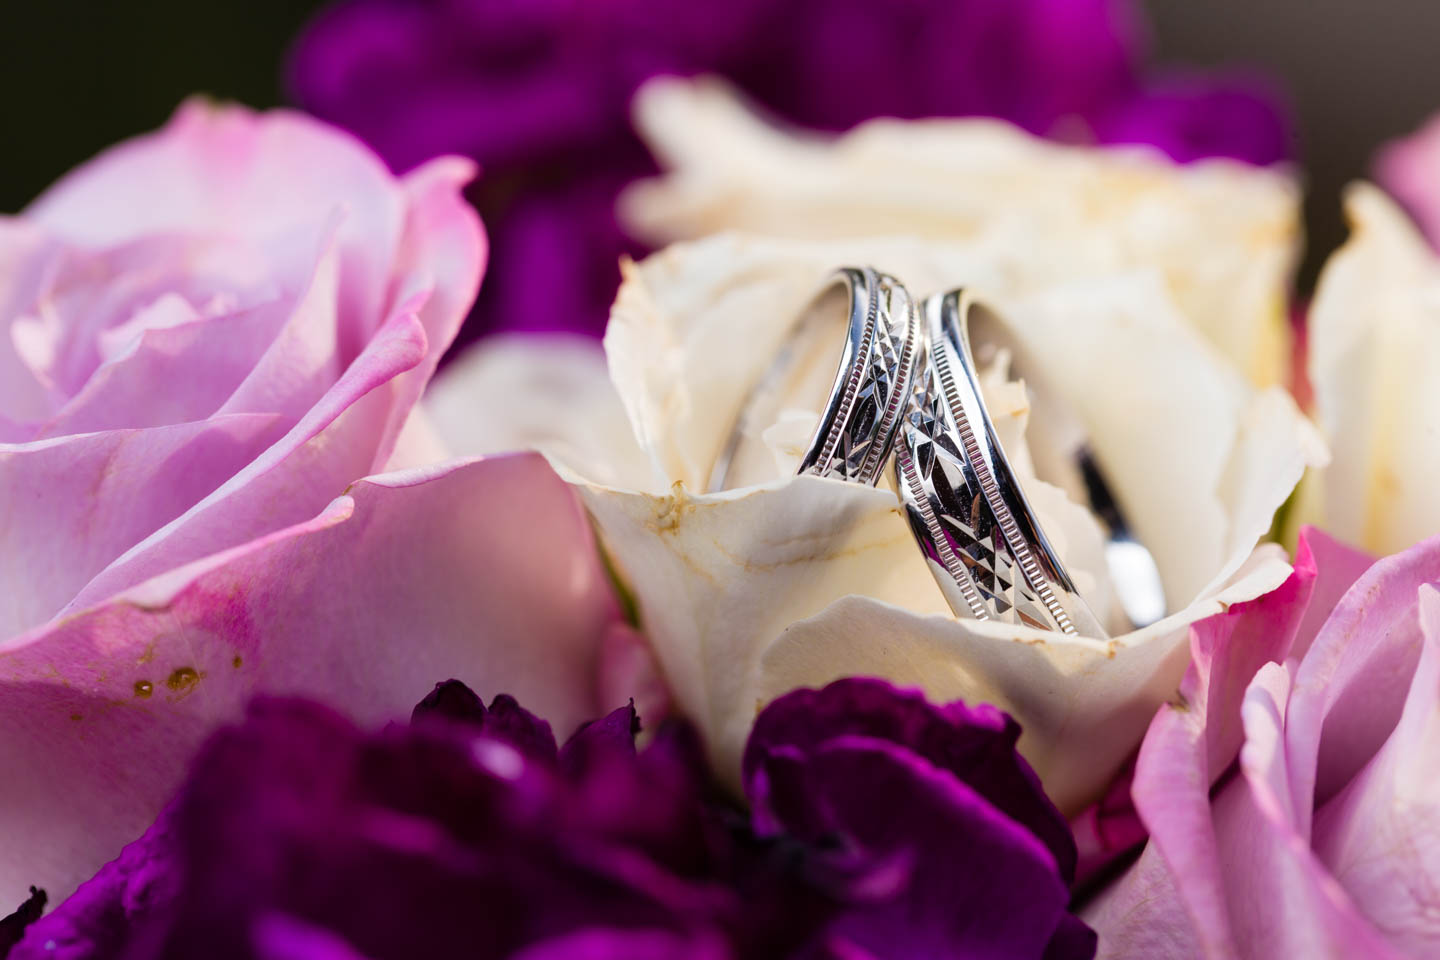 The wedding rings in flowers